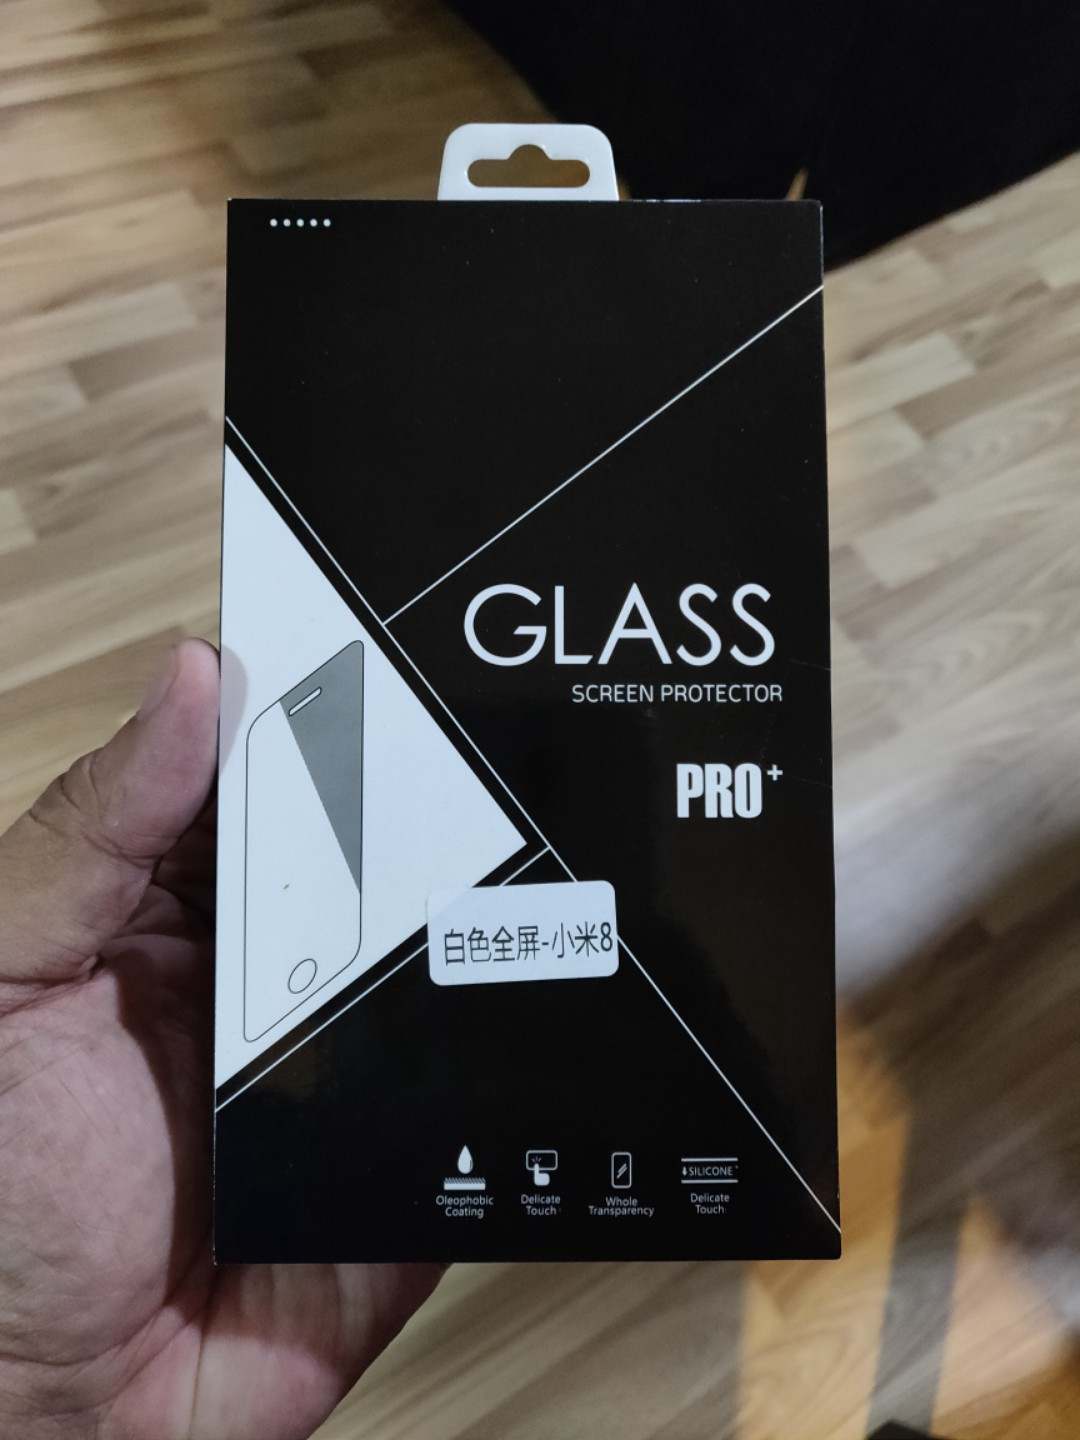 Mi 8 Screen Protector Mobile Phones Tablets Tablet Xiaomi Se Camera Lens Tempered Glass Clear Accessories On Carousell